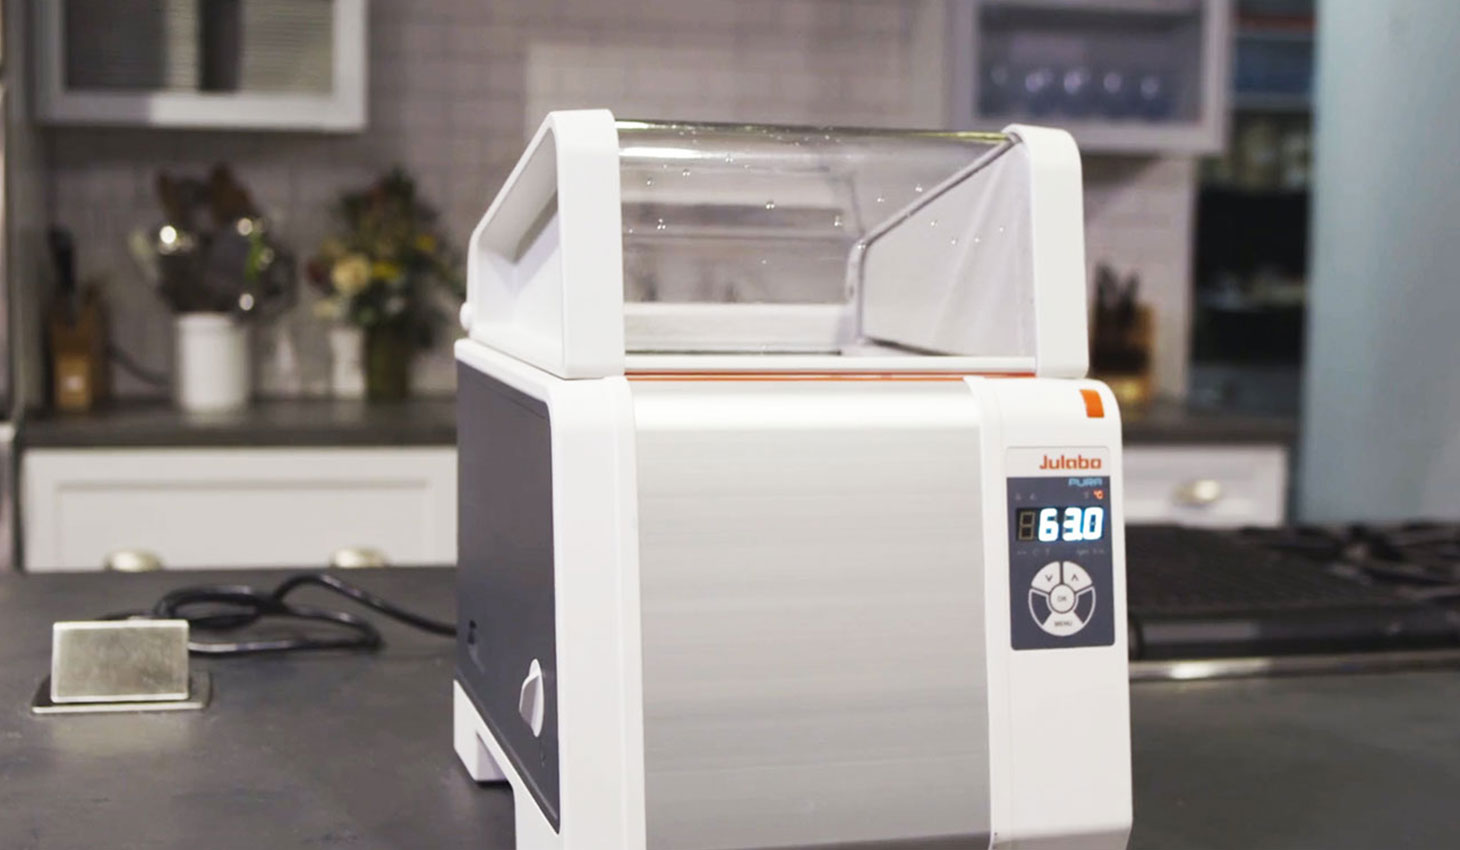 Julabo Pura on the counter of a test kitchen